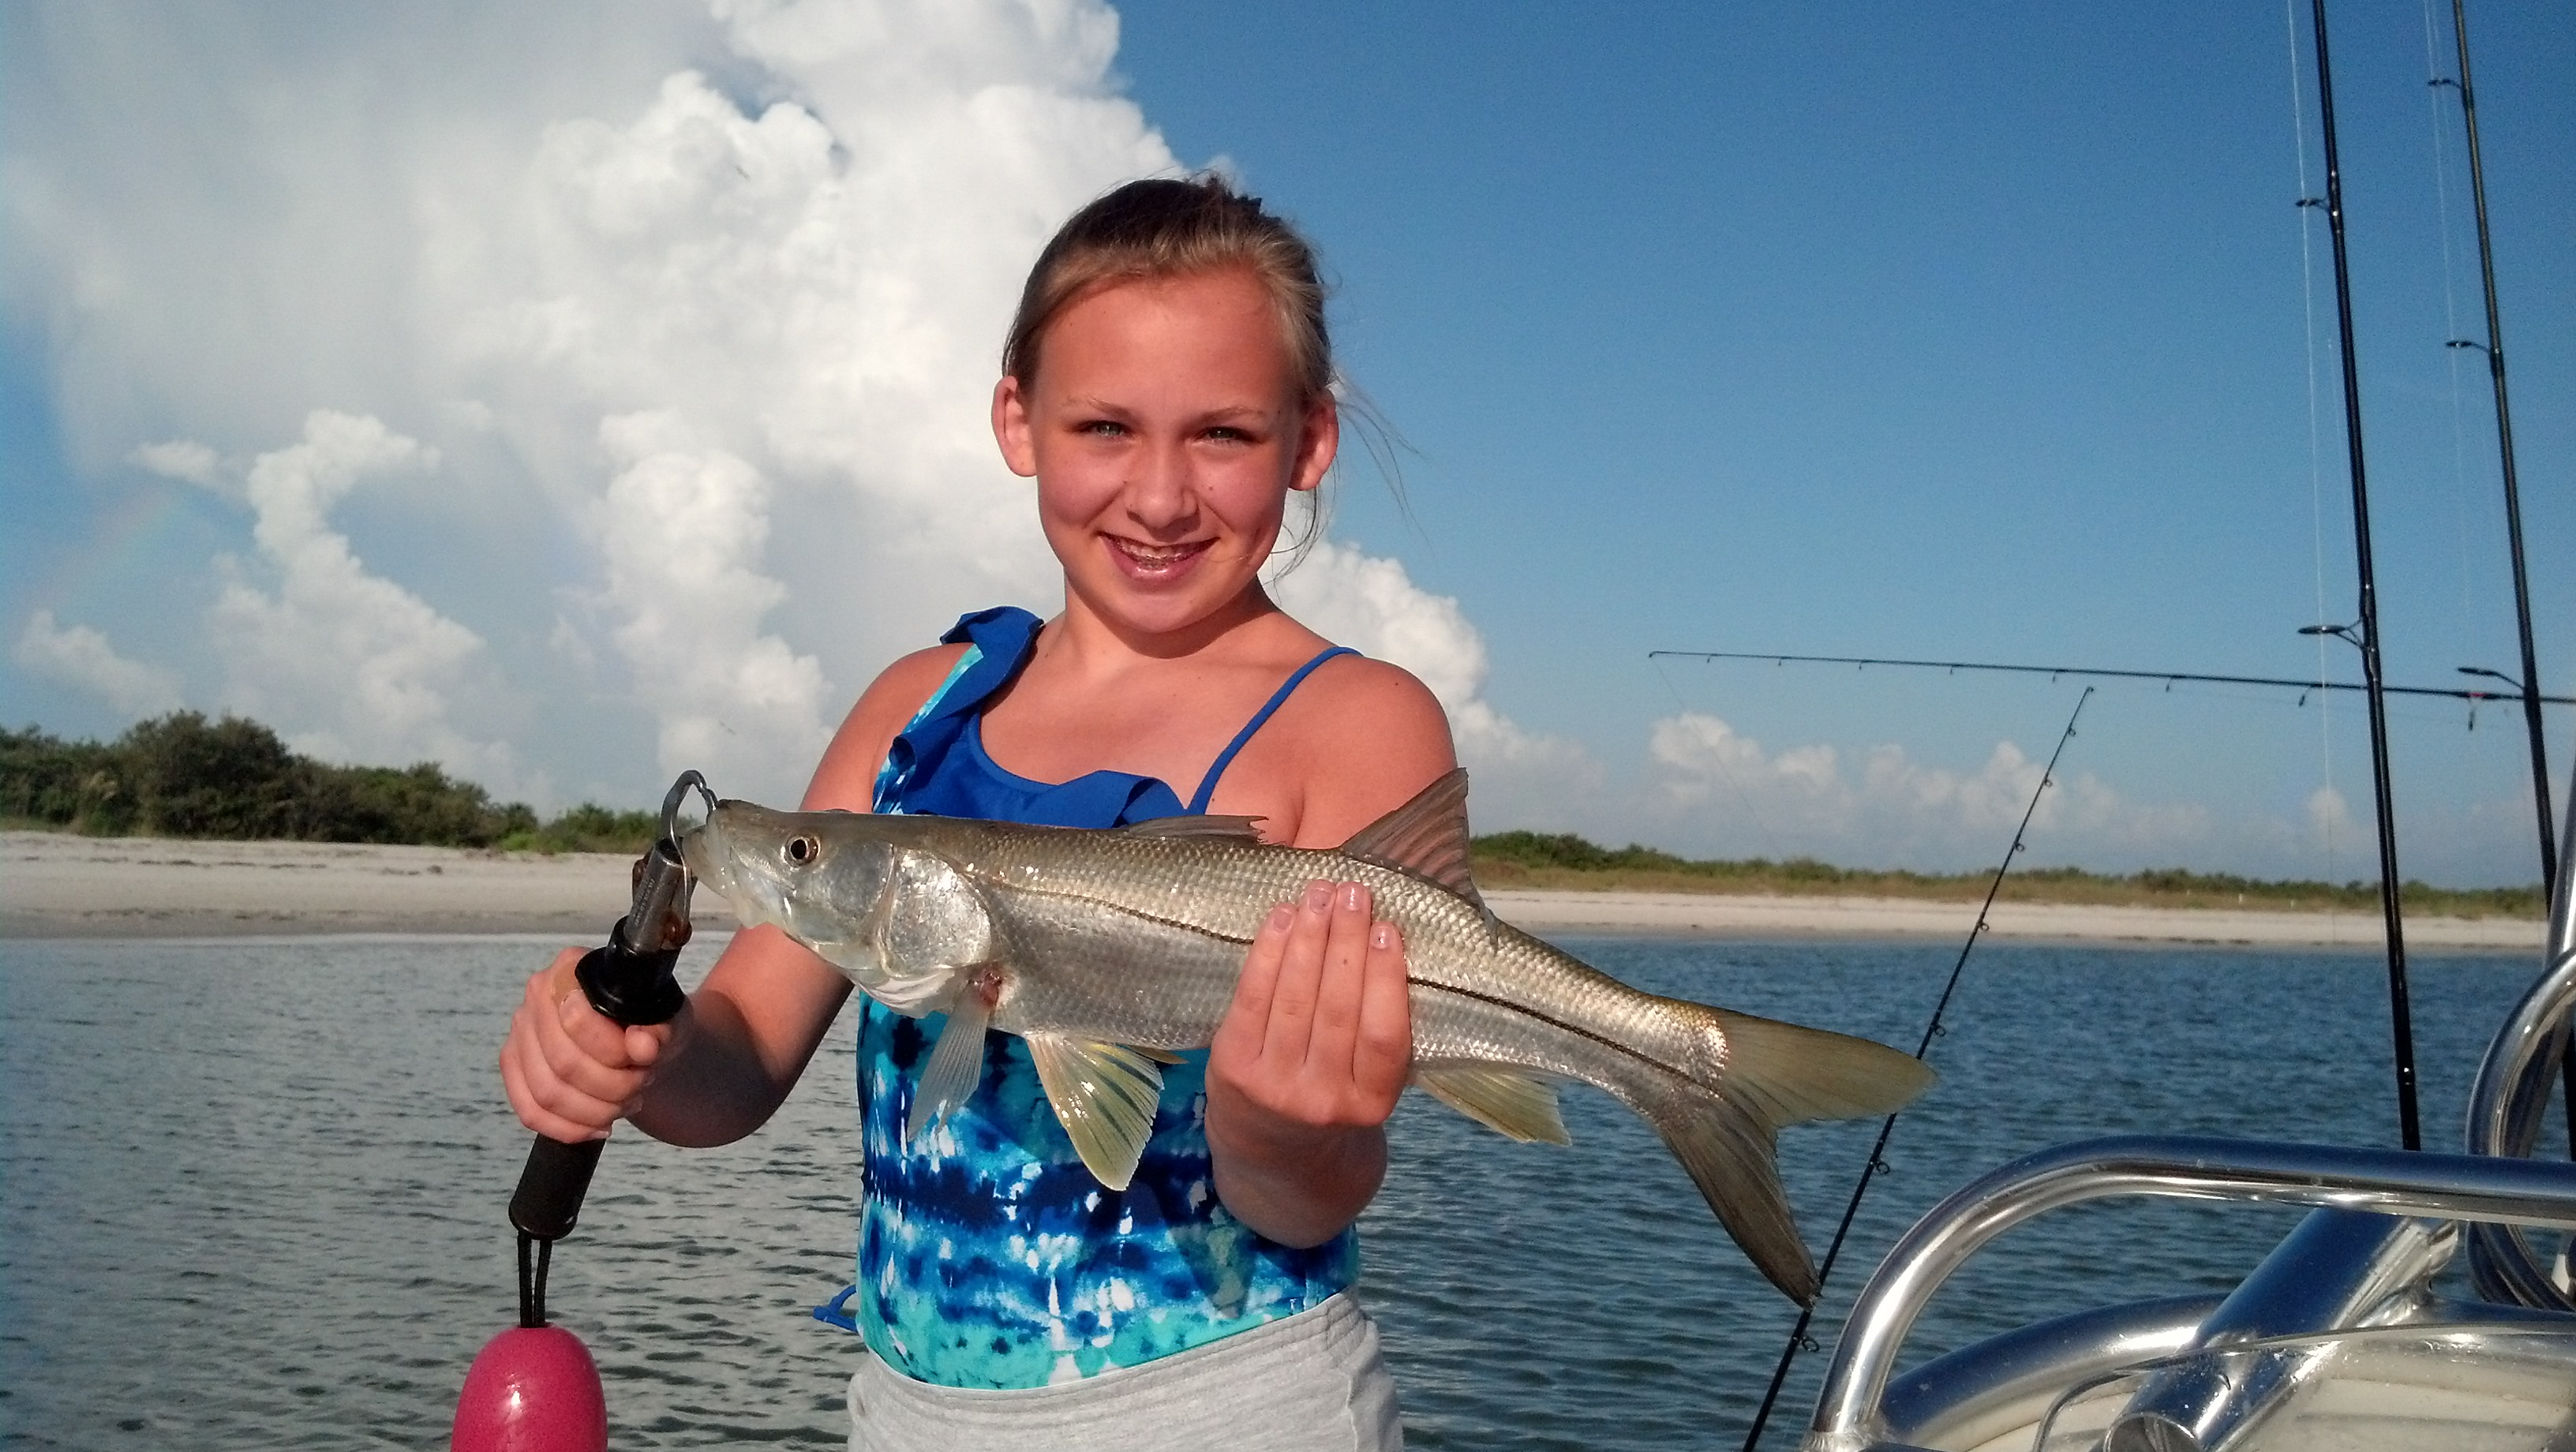 Tampa bay fishing for snook captain mike gore for Tampa bay fish